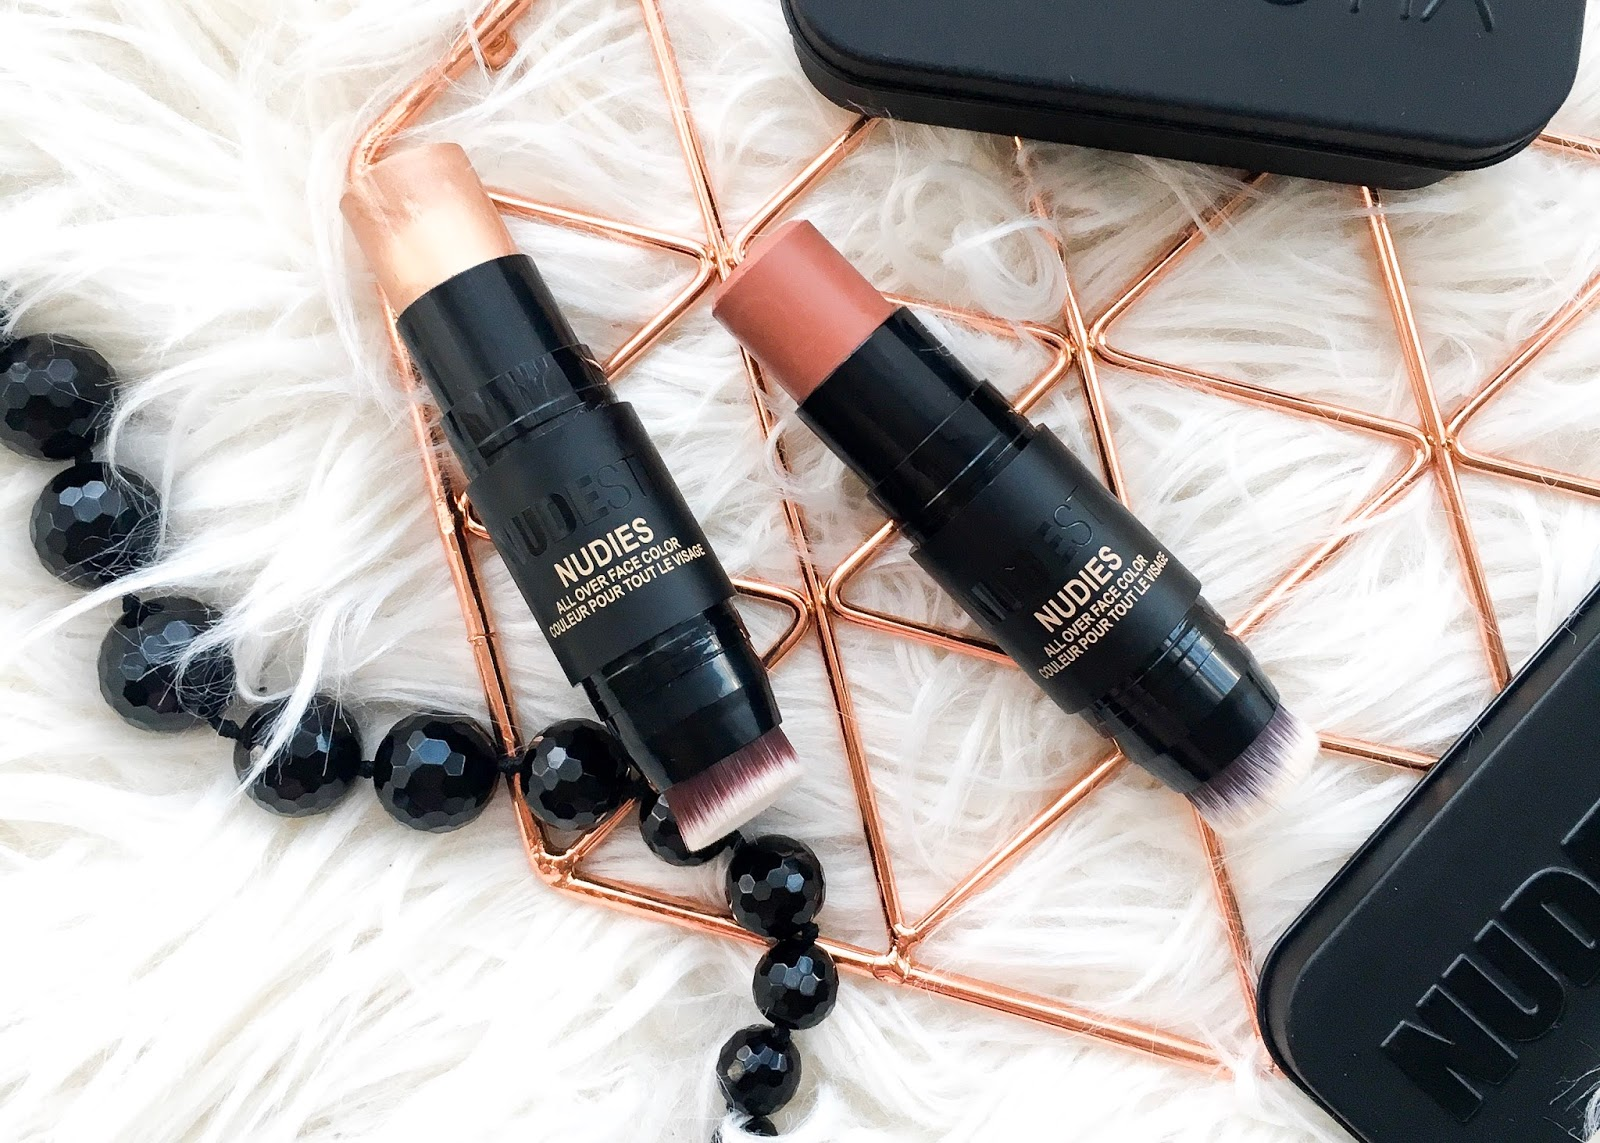 nudestix nudies review, multipurpose makeup, best multipurpose makeup sticks